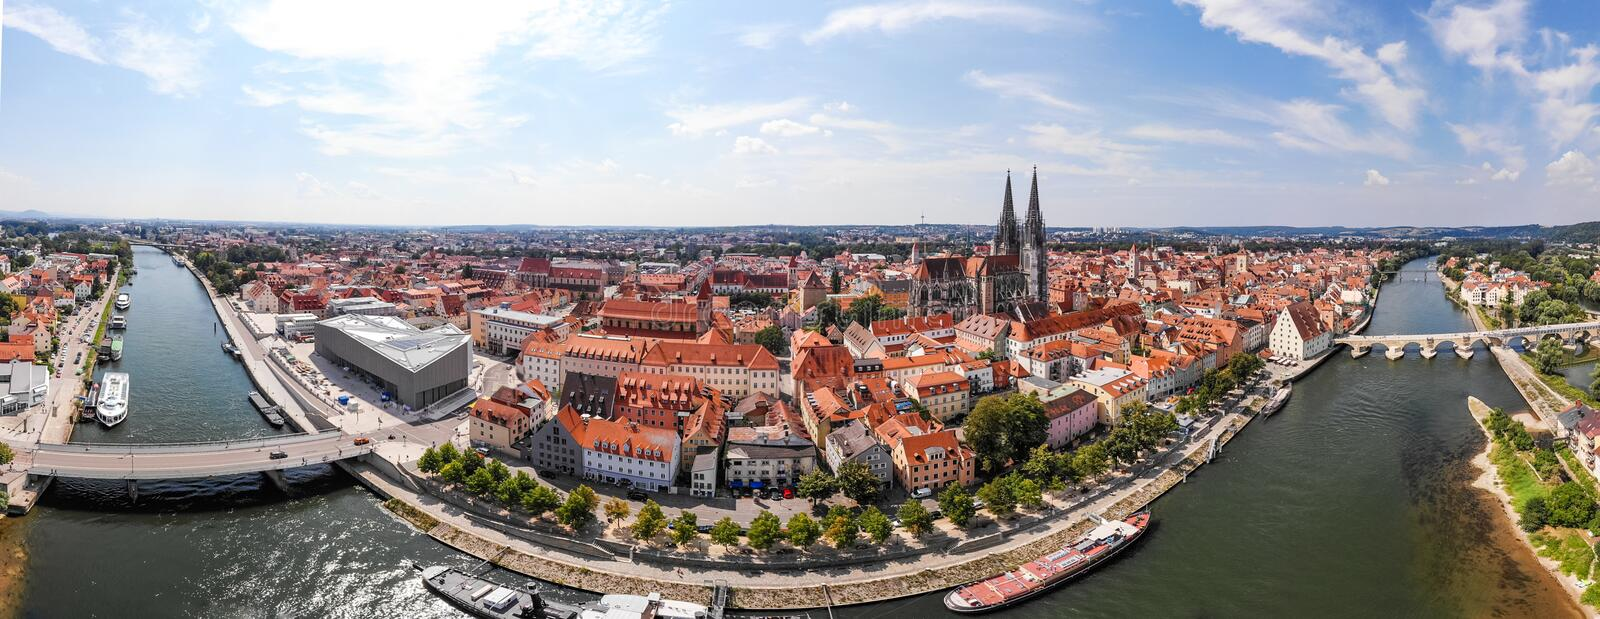 Panoramic landscape with view on Danube river and Regensburg city architecture, Germany, Aerial photography. Panoramic landscape with view on Danube river and royalty free stock image